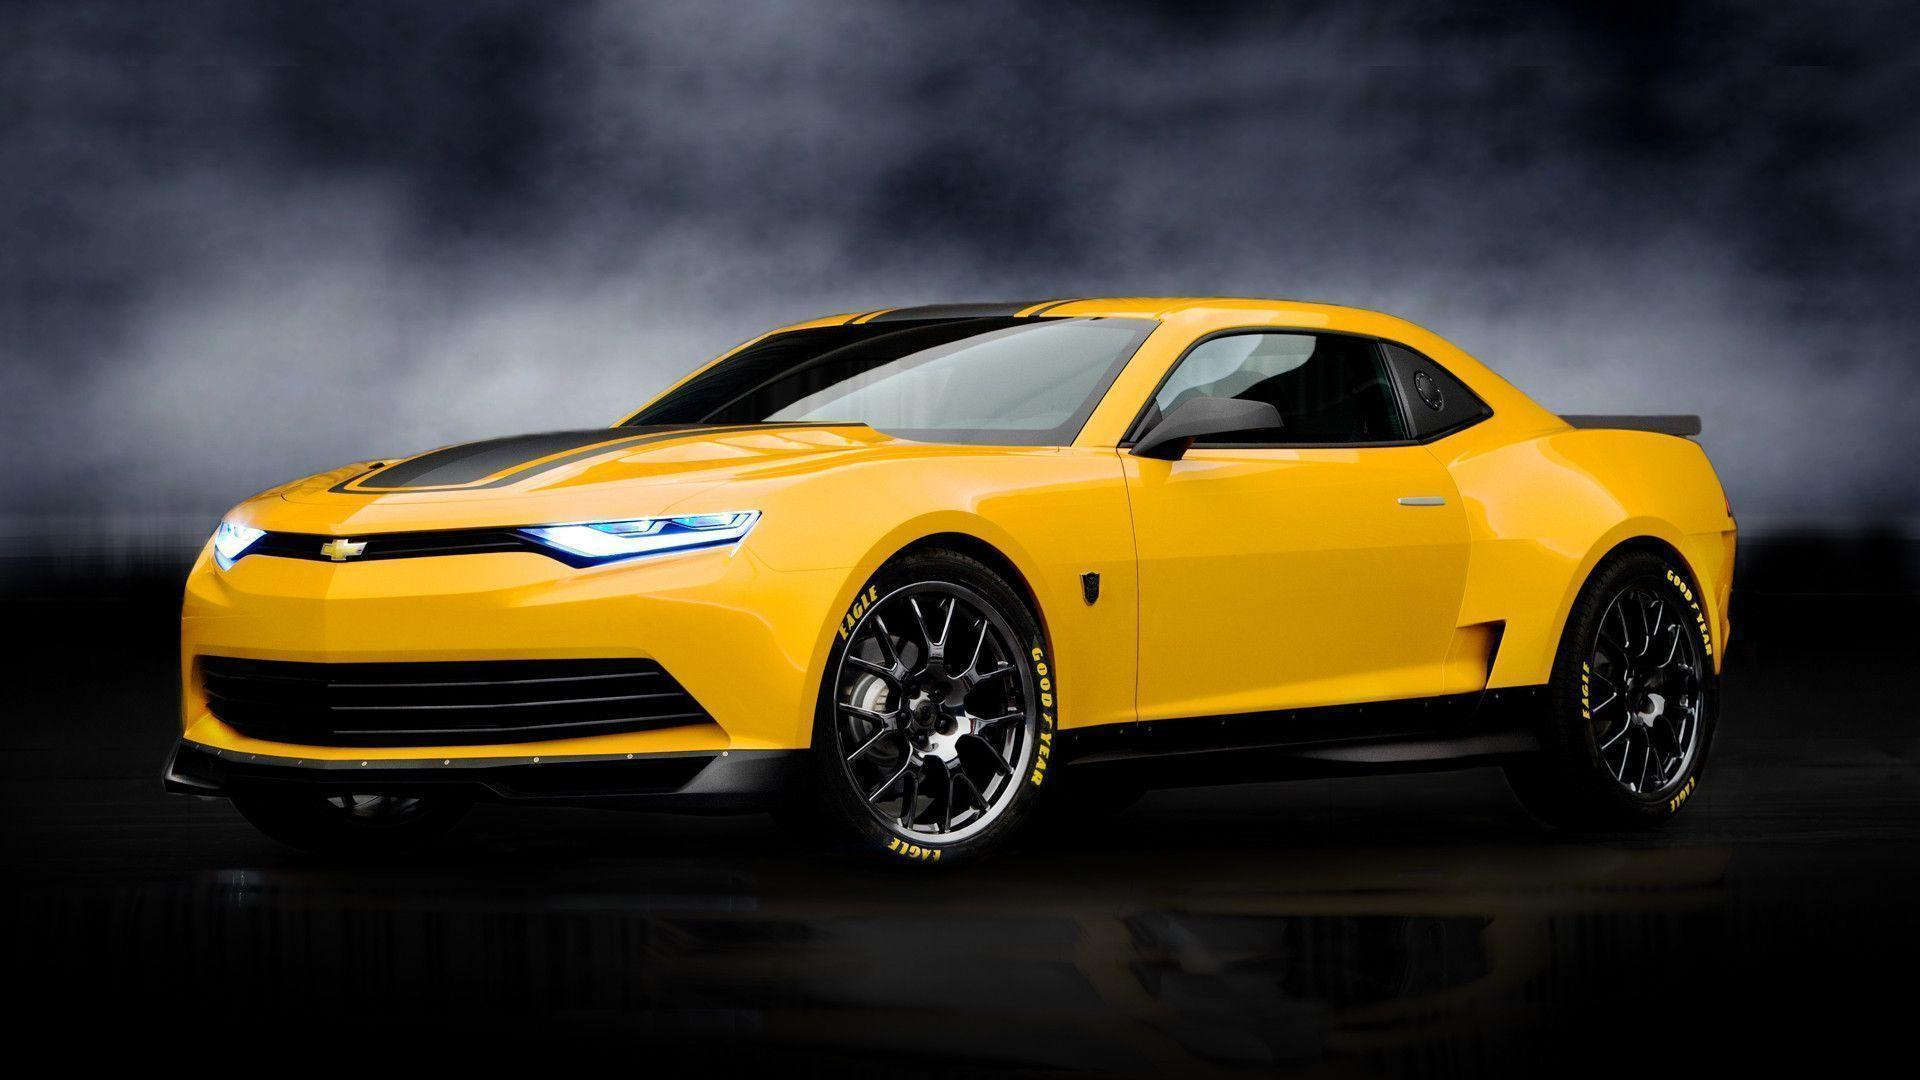 We offer you to download wallpapers bumblebee, 4k, yellow neon lights, transformers, autobot, creative, bumblebee transformer, bumblebee 4k, chevy camaro transformer from a set of categories films necessary for the resolution of the monitor you for free and without registration. Bumblebee 2015 Wallpapers Hd Wallpaper Cave